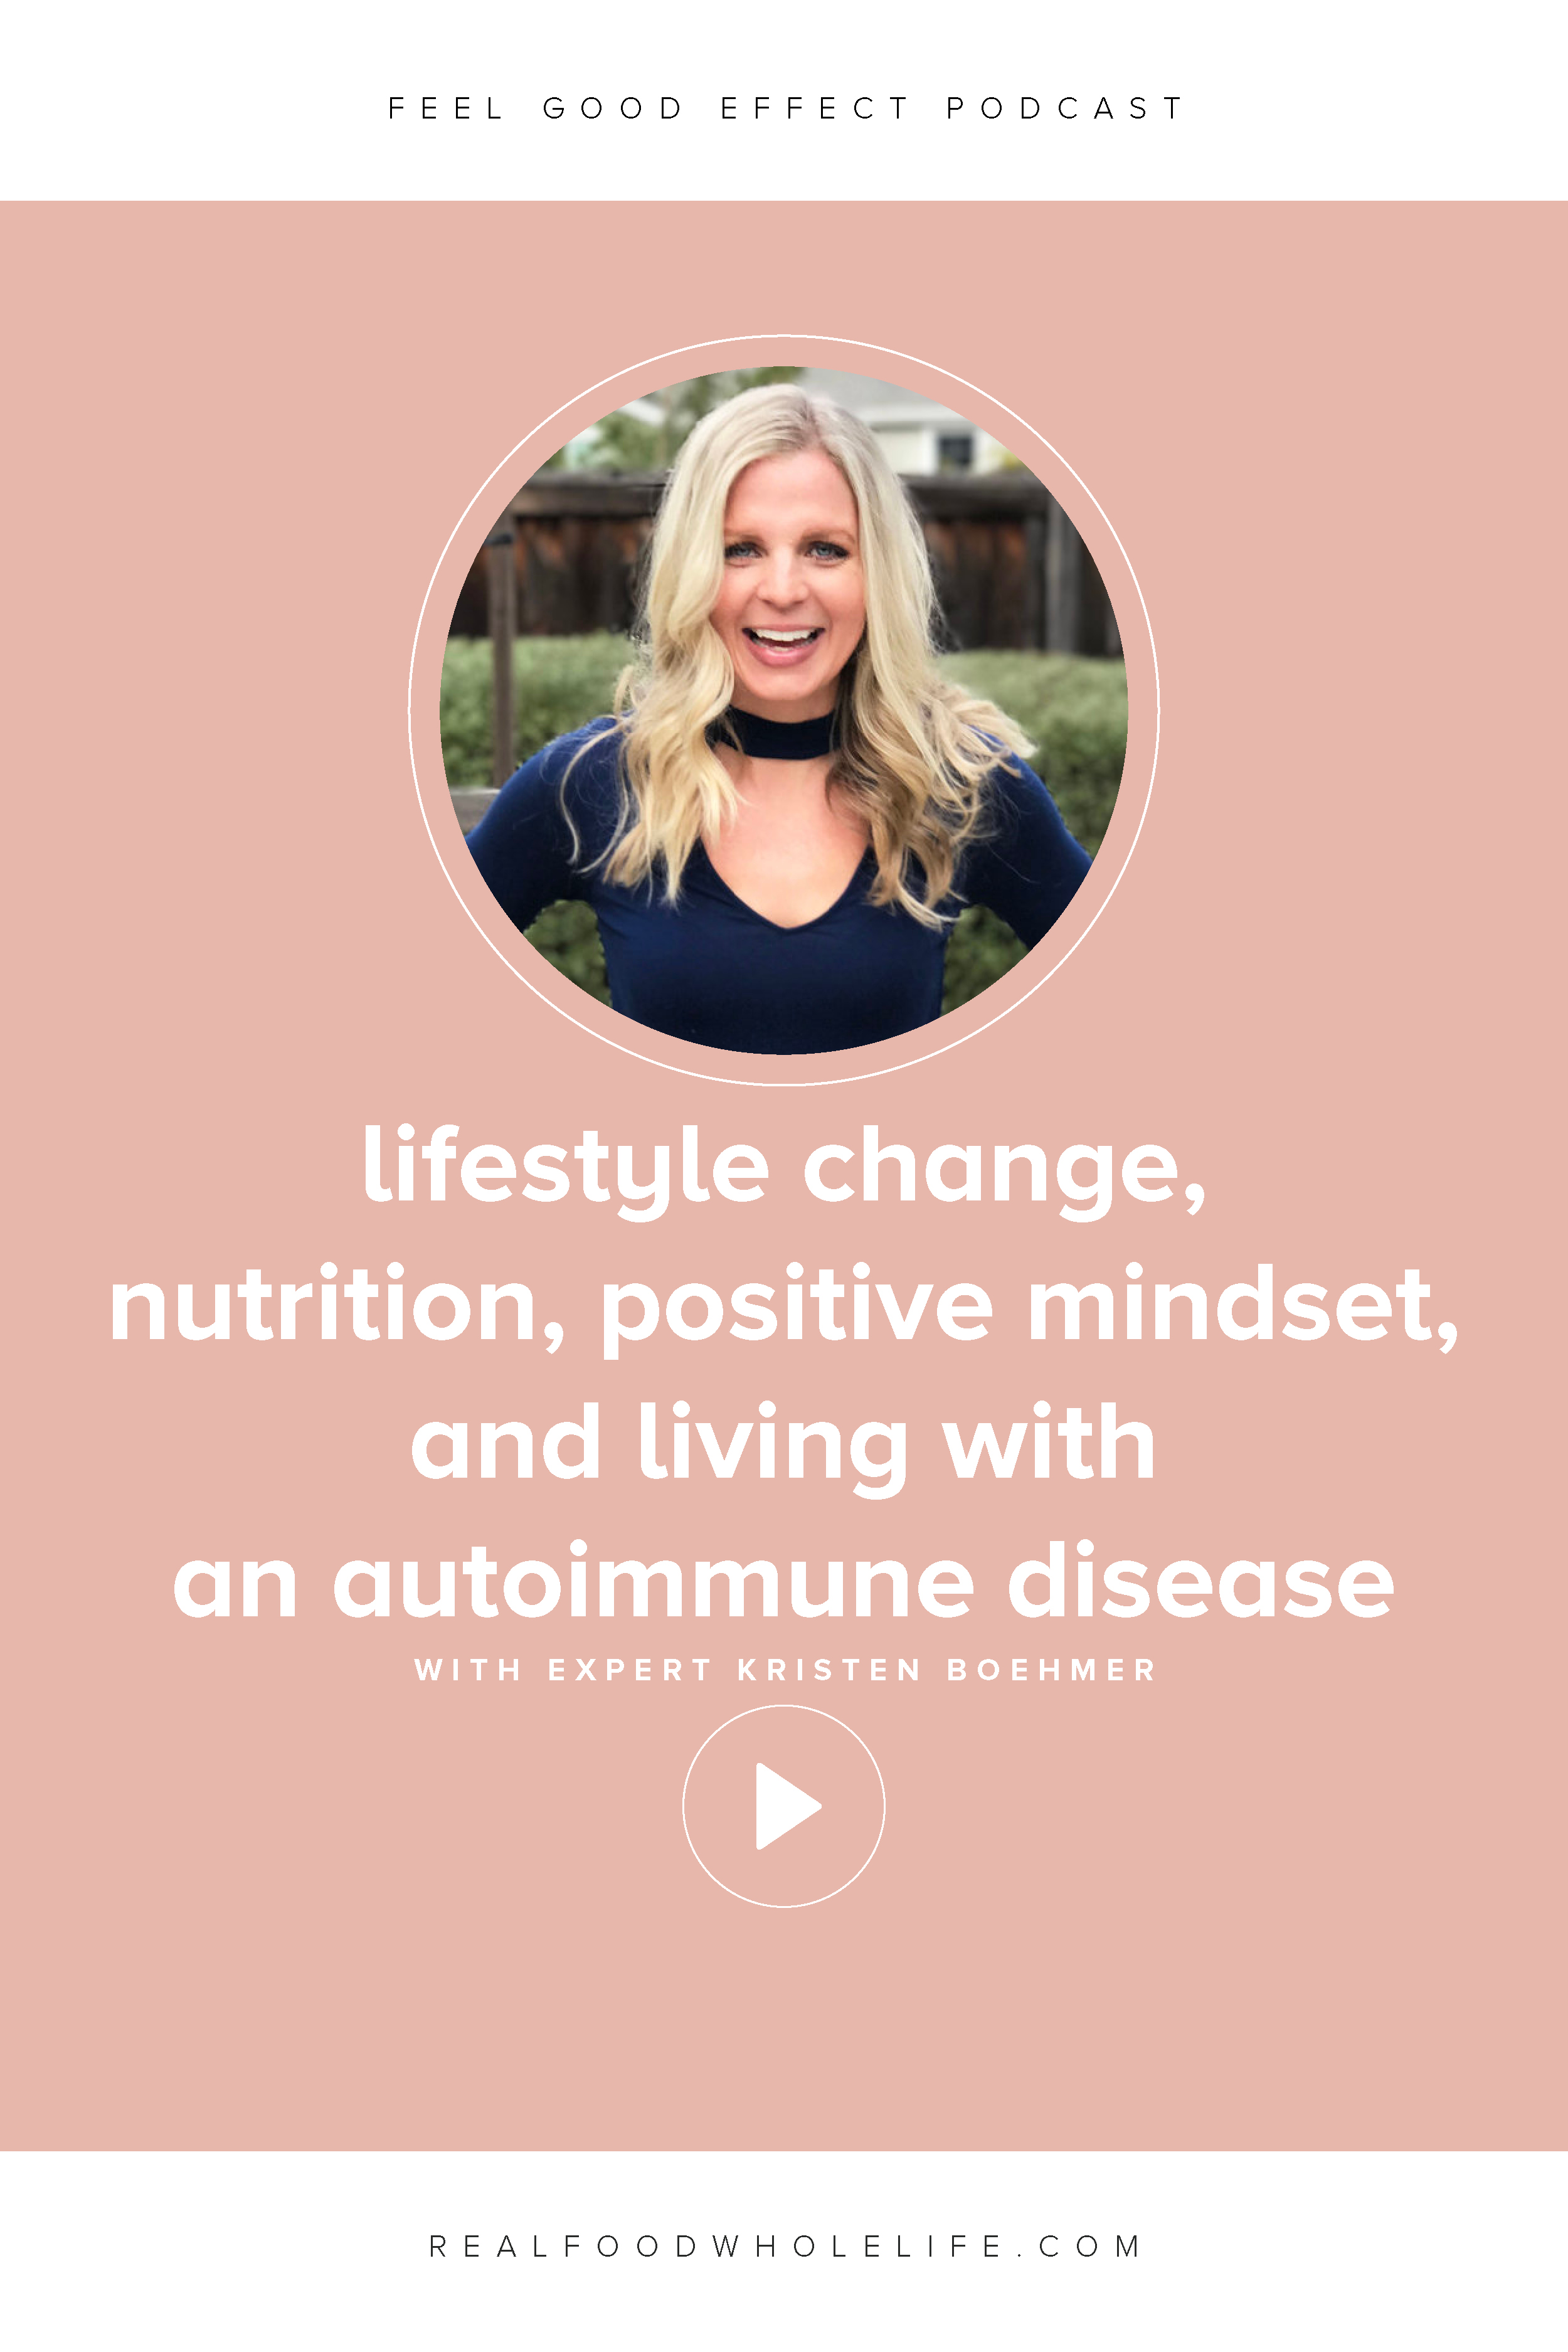 Feel Good Effect Podcast, Kristen Boehmer, Living Loving Paleo